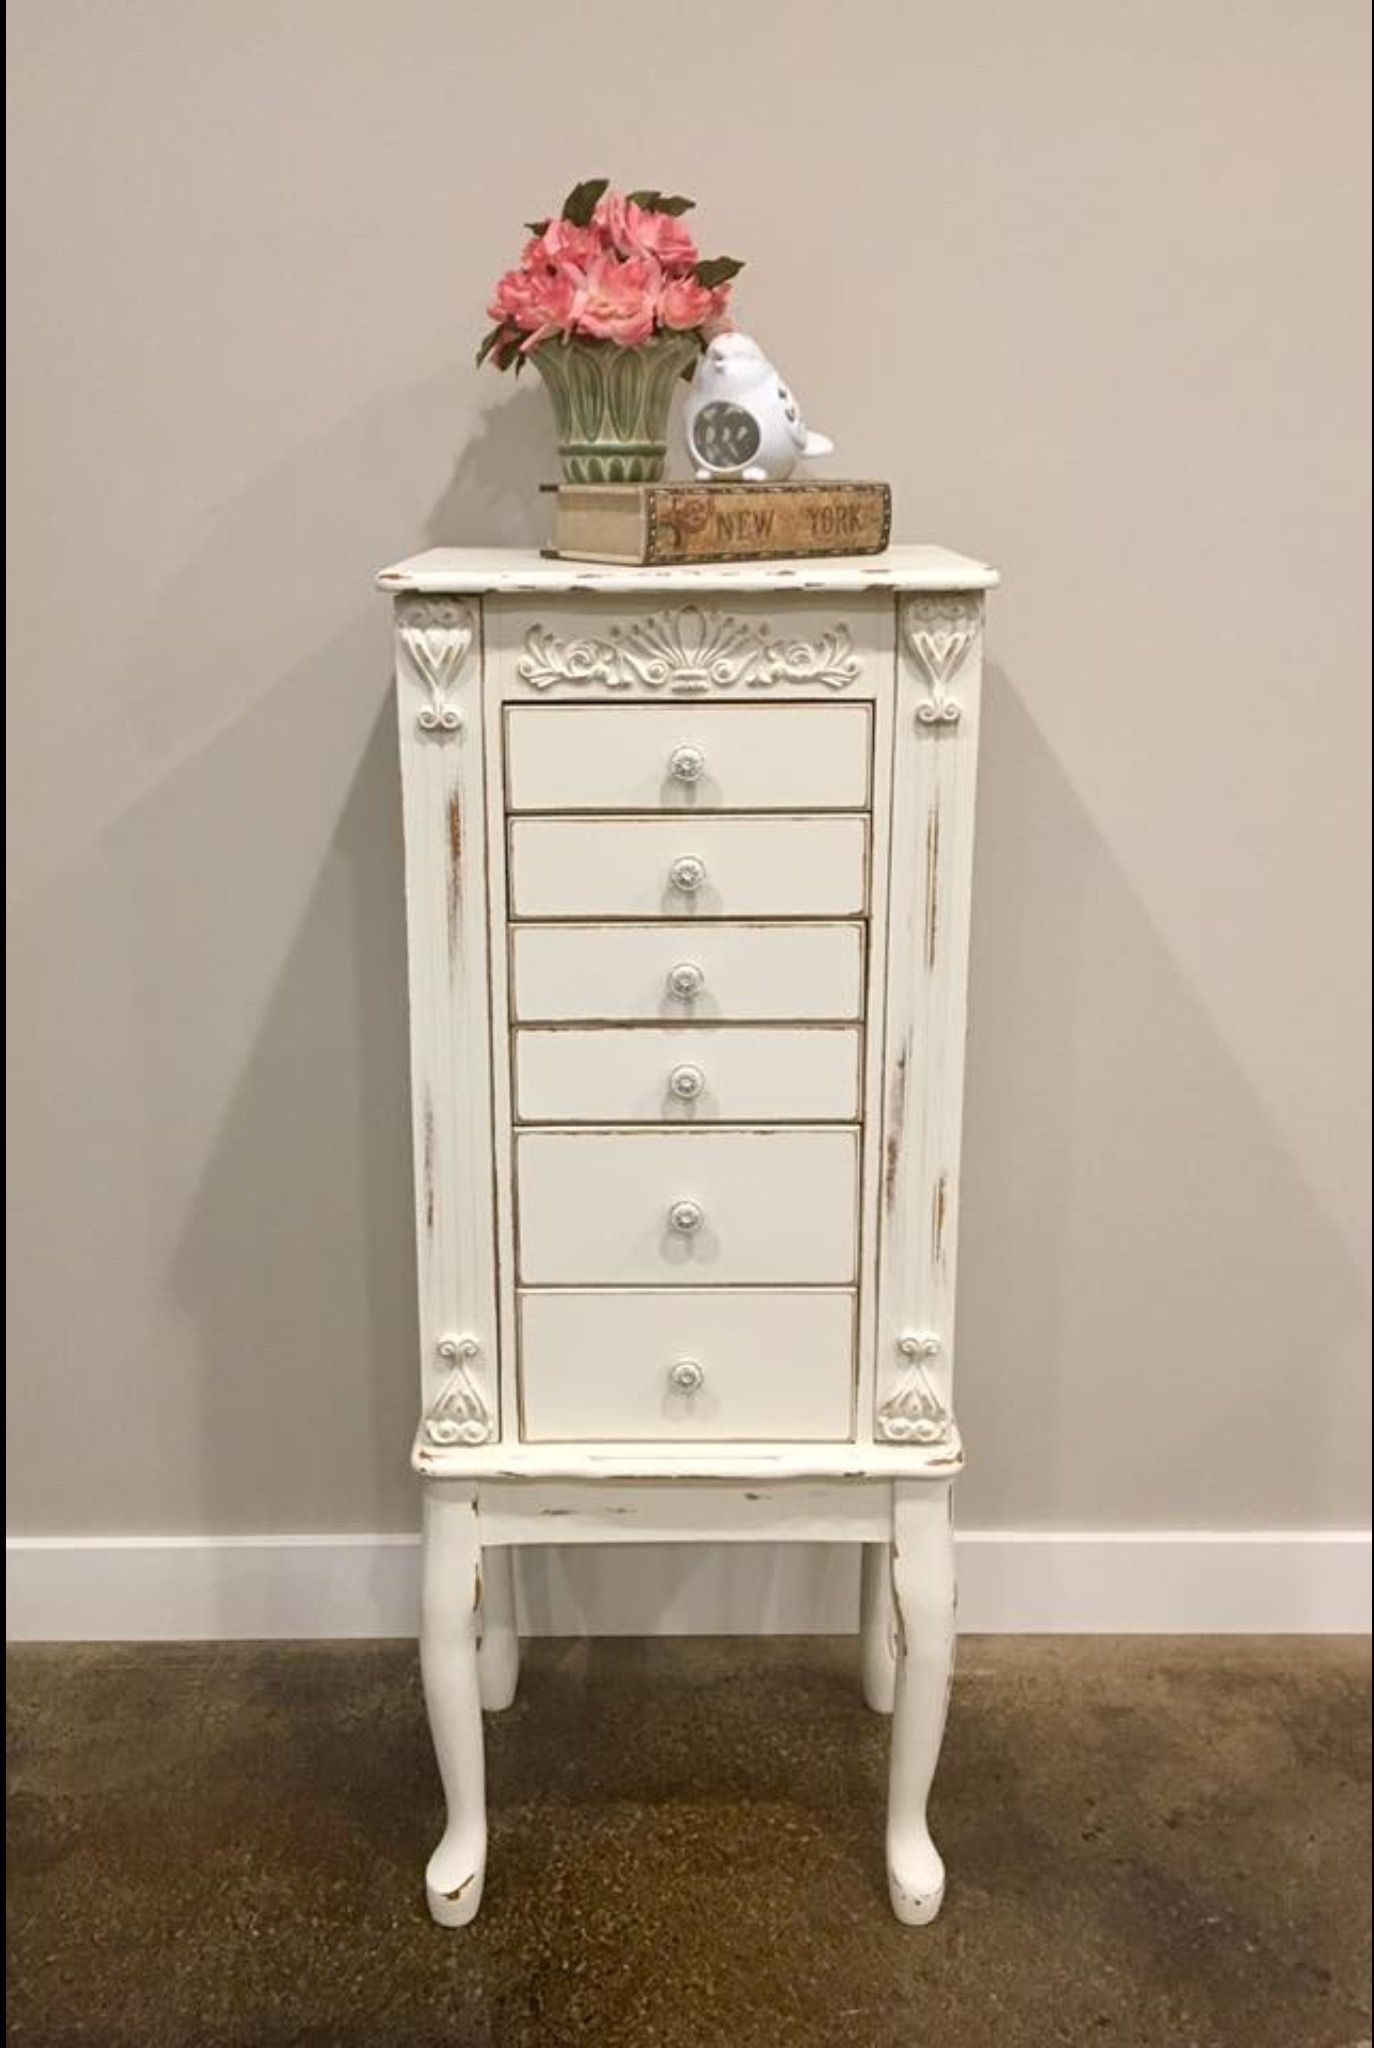 Beautiful Distressed Jewelry Armoire Done In Butter Cream Chalk Paint